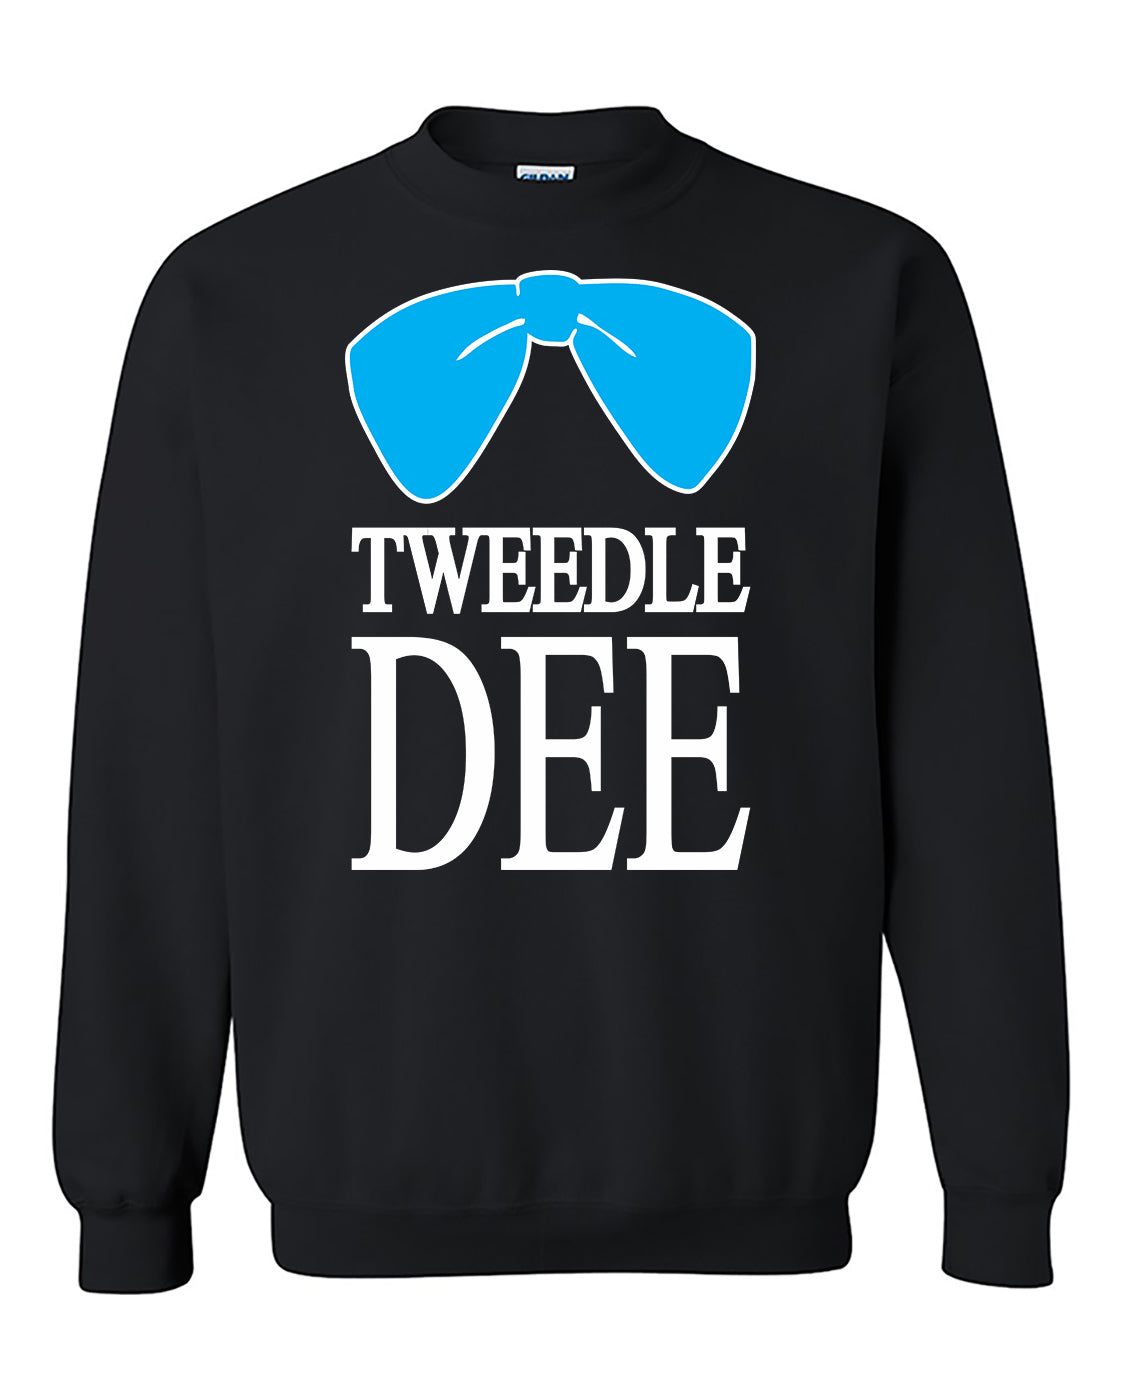 Tweedle Dee Funny Couples Valentine's Day Gift Crewneck Sweater